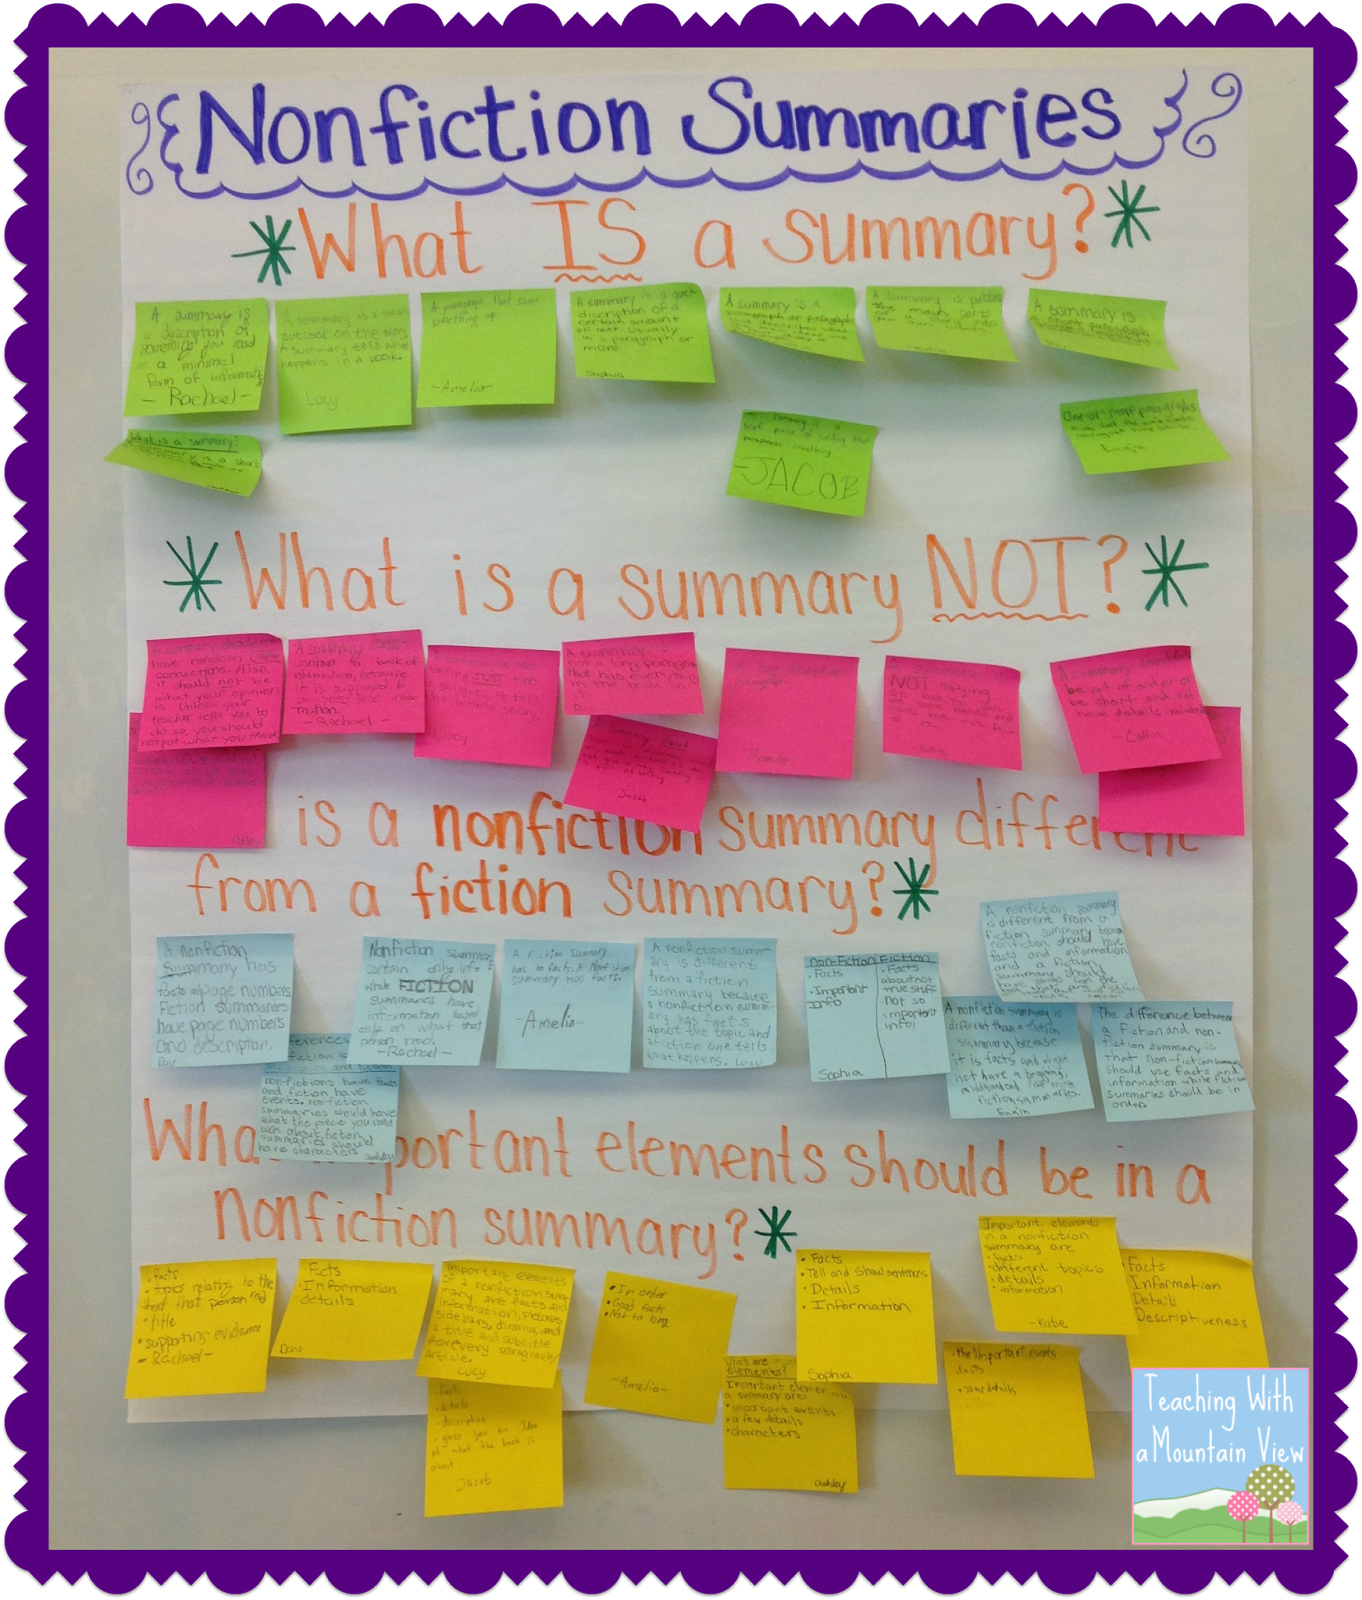 nonfiction summaries activities summary anchor chart and nonfiction summary intro activity great to integrate into science and social studies